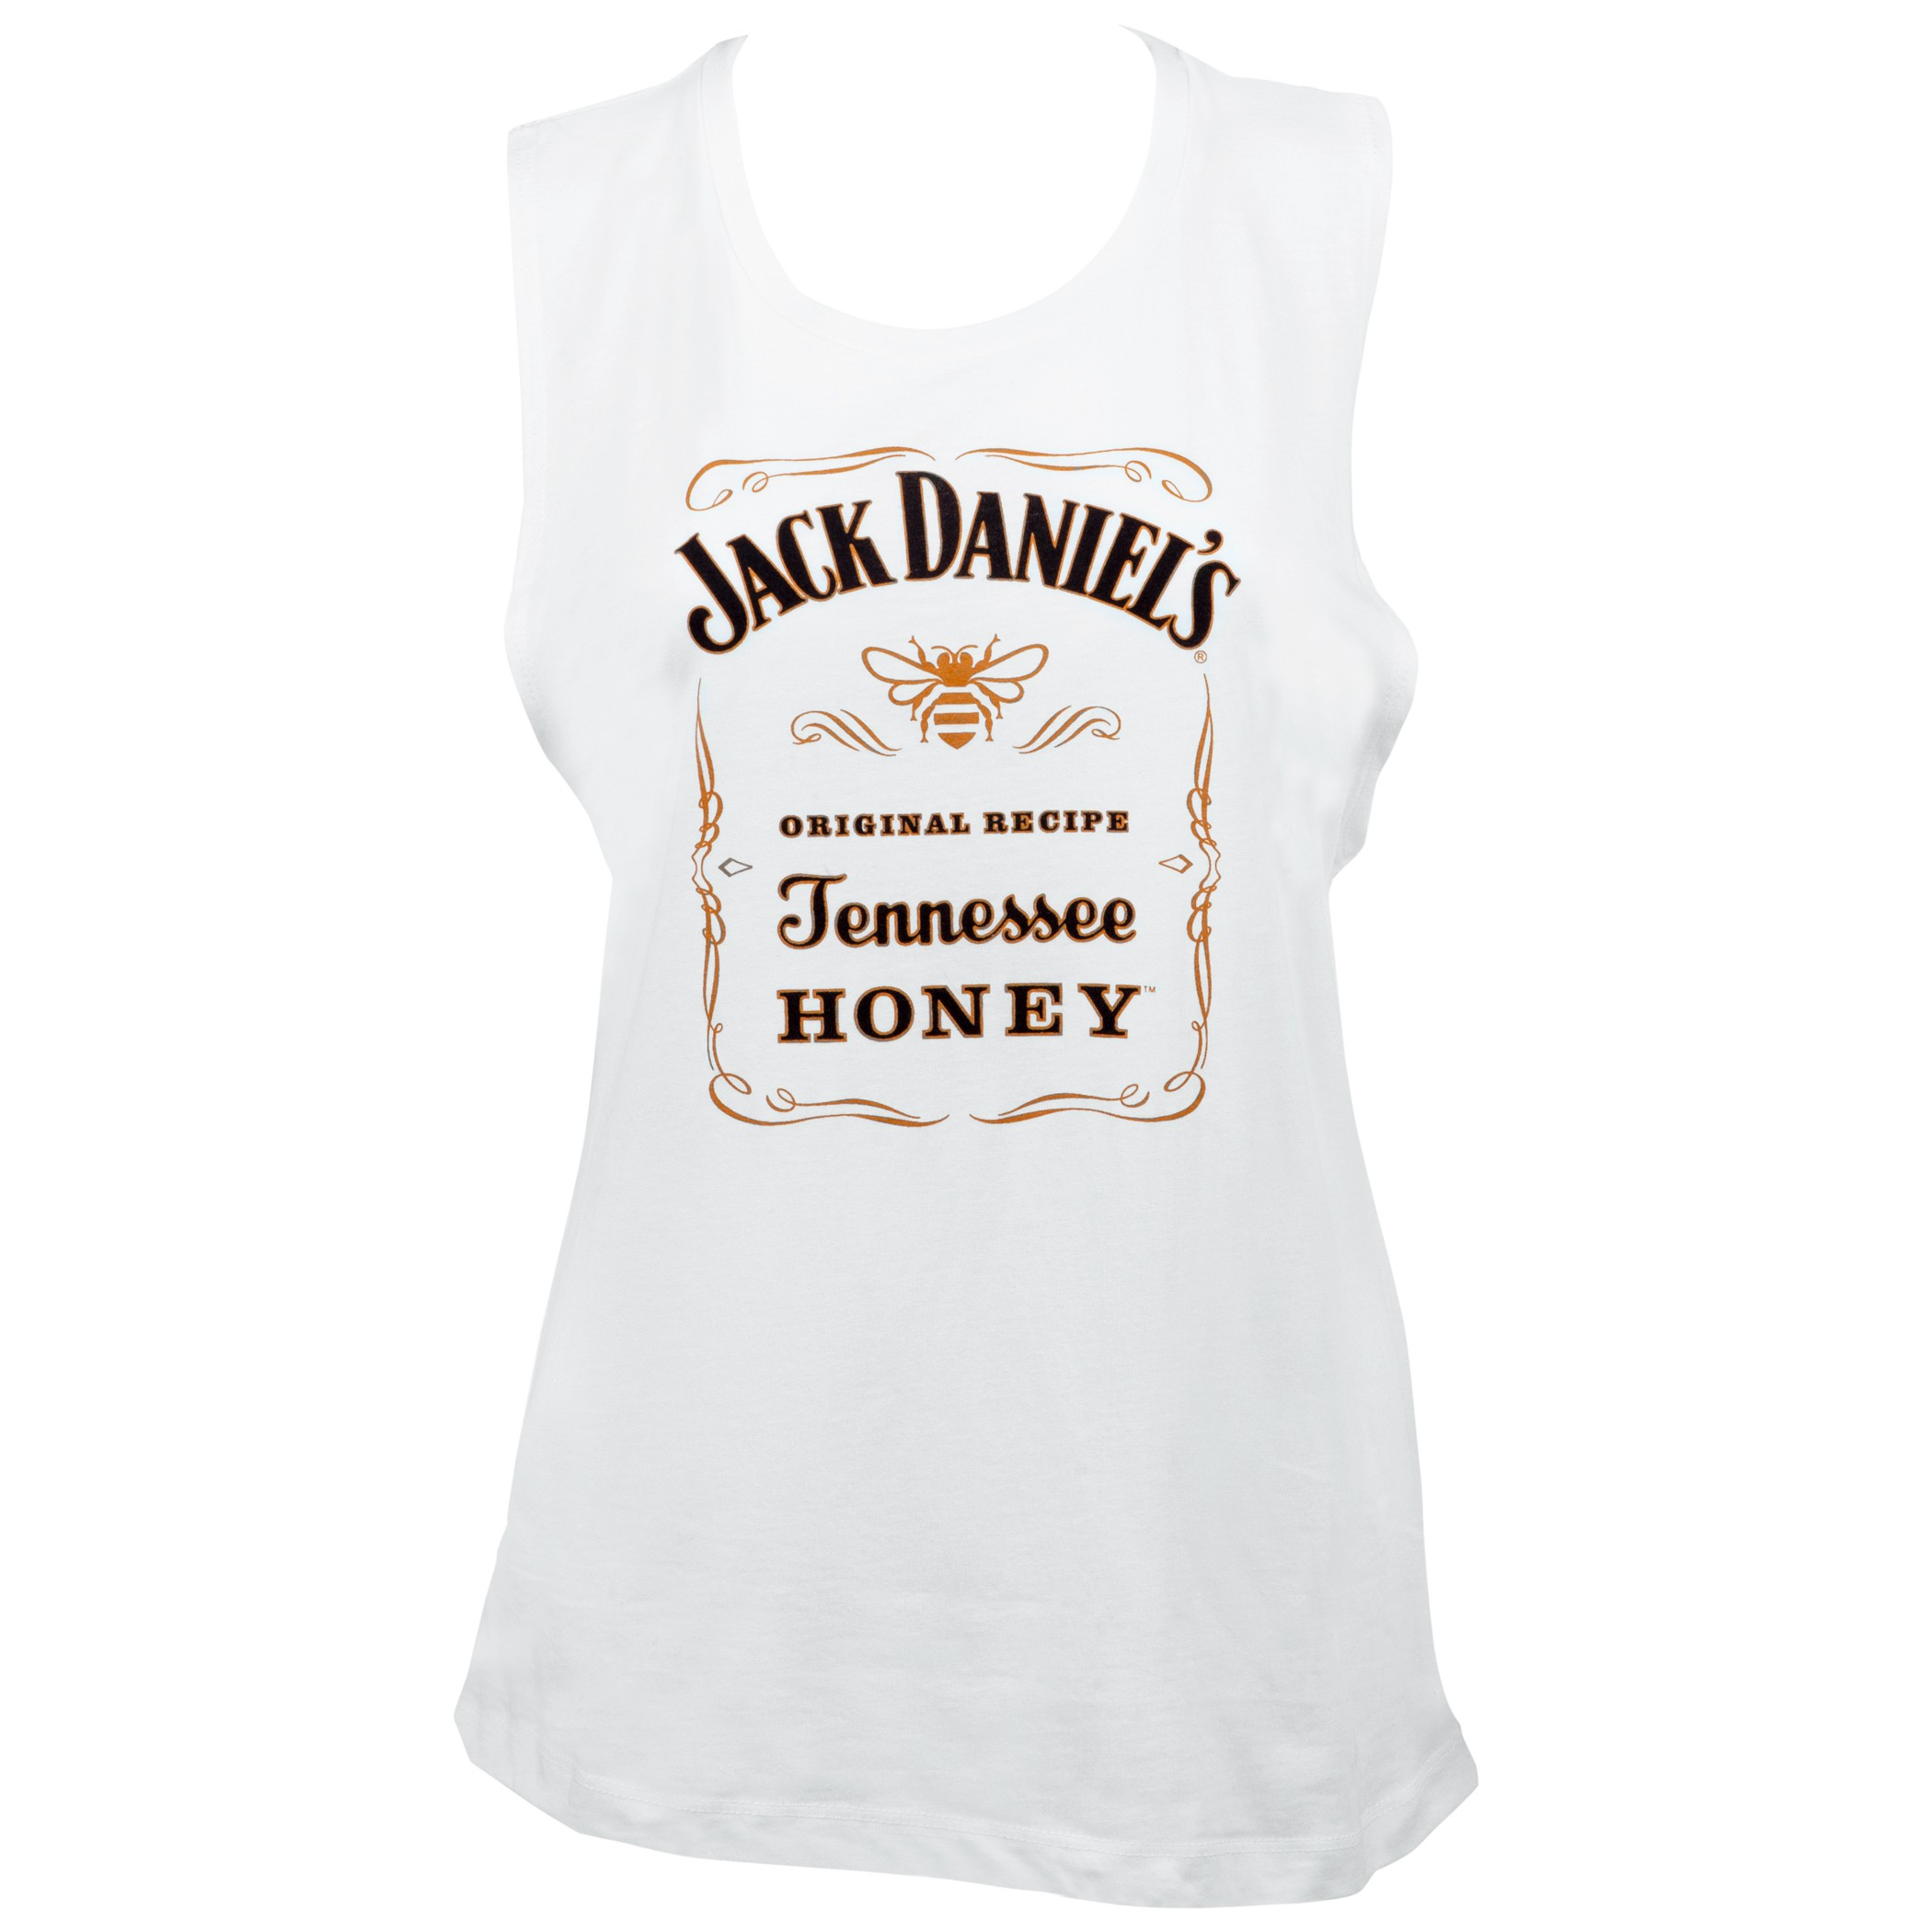 Jack Daniels Tennessee Honey Women's Muscle Tank